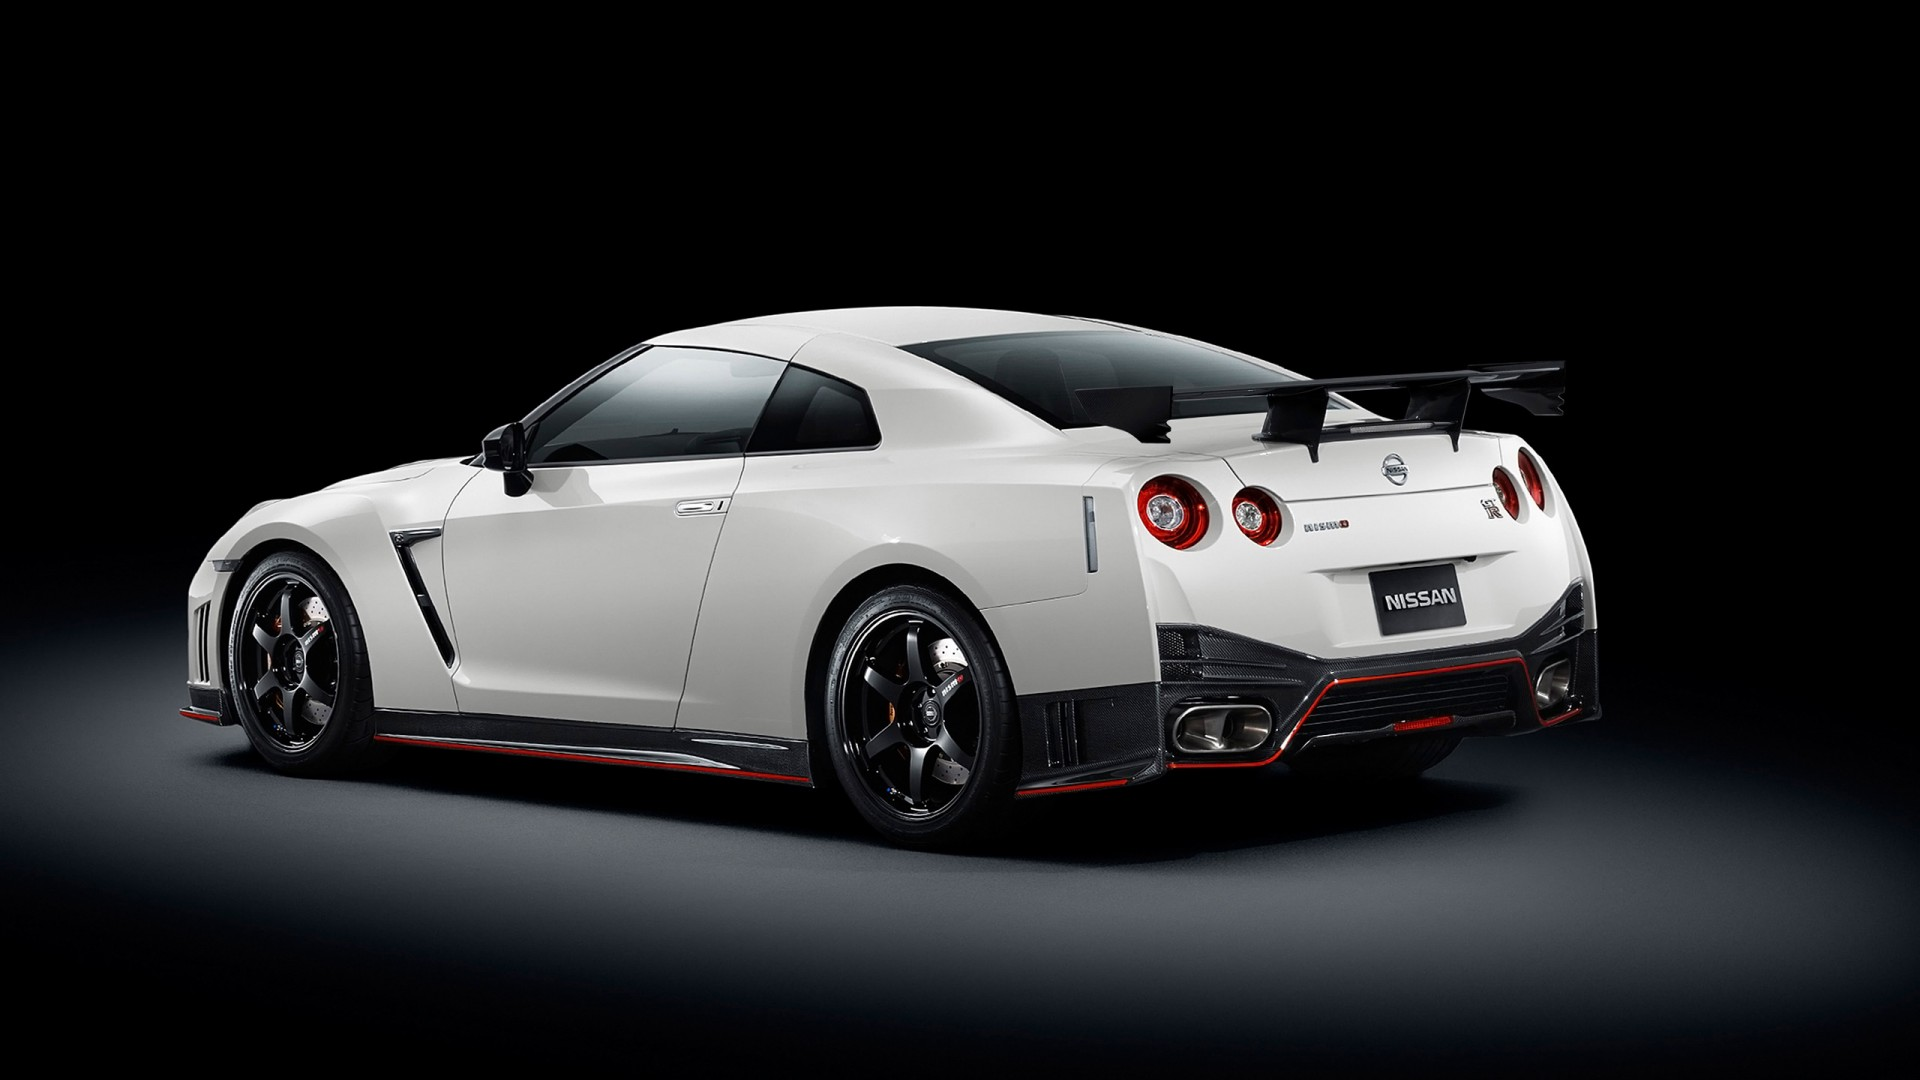 2015 Nissan Gt R Nismo 4 Wallpaper Hd Car Wallpapers